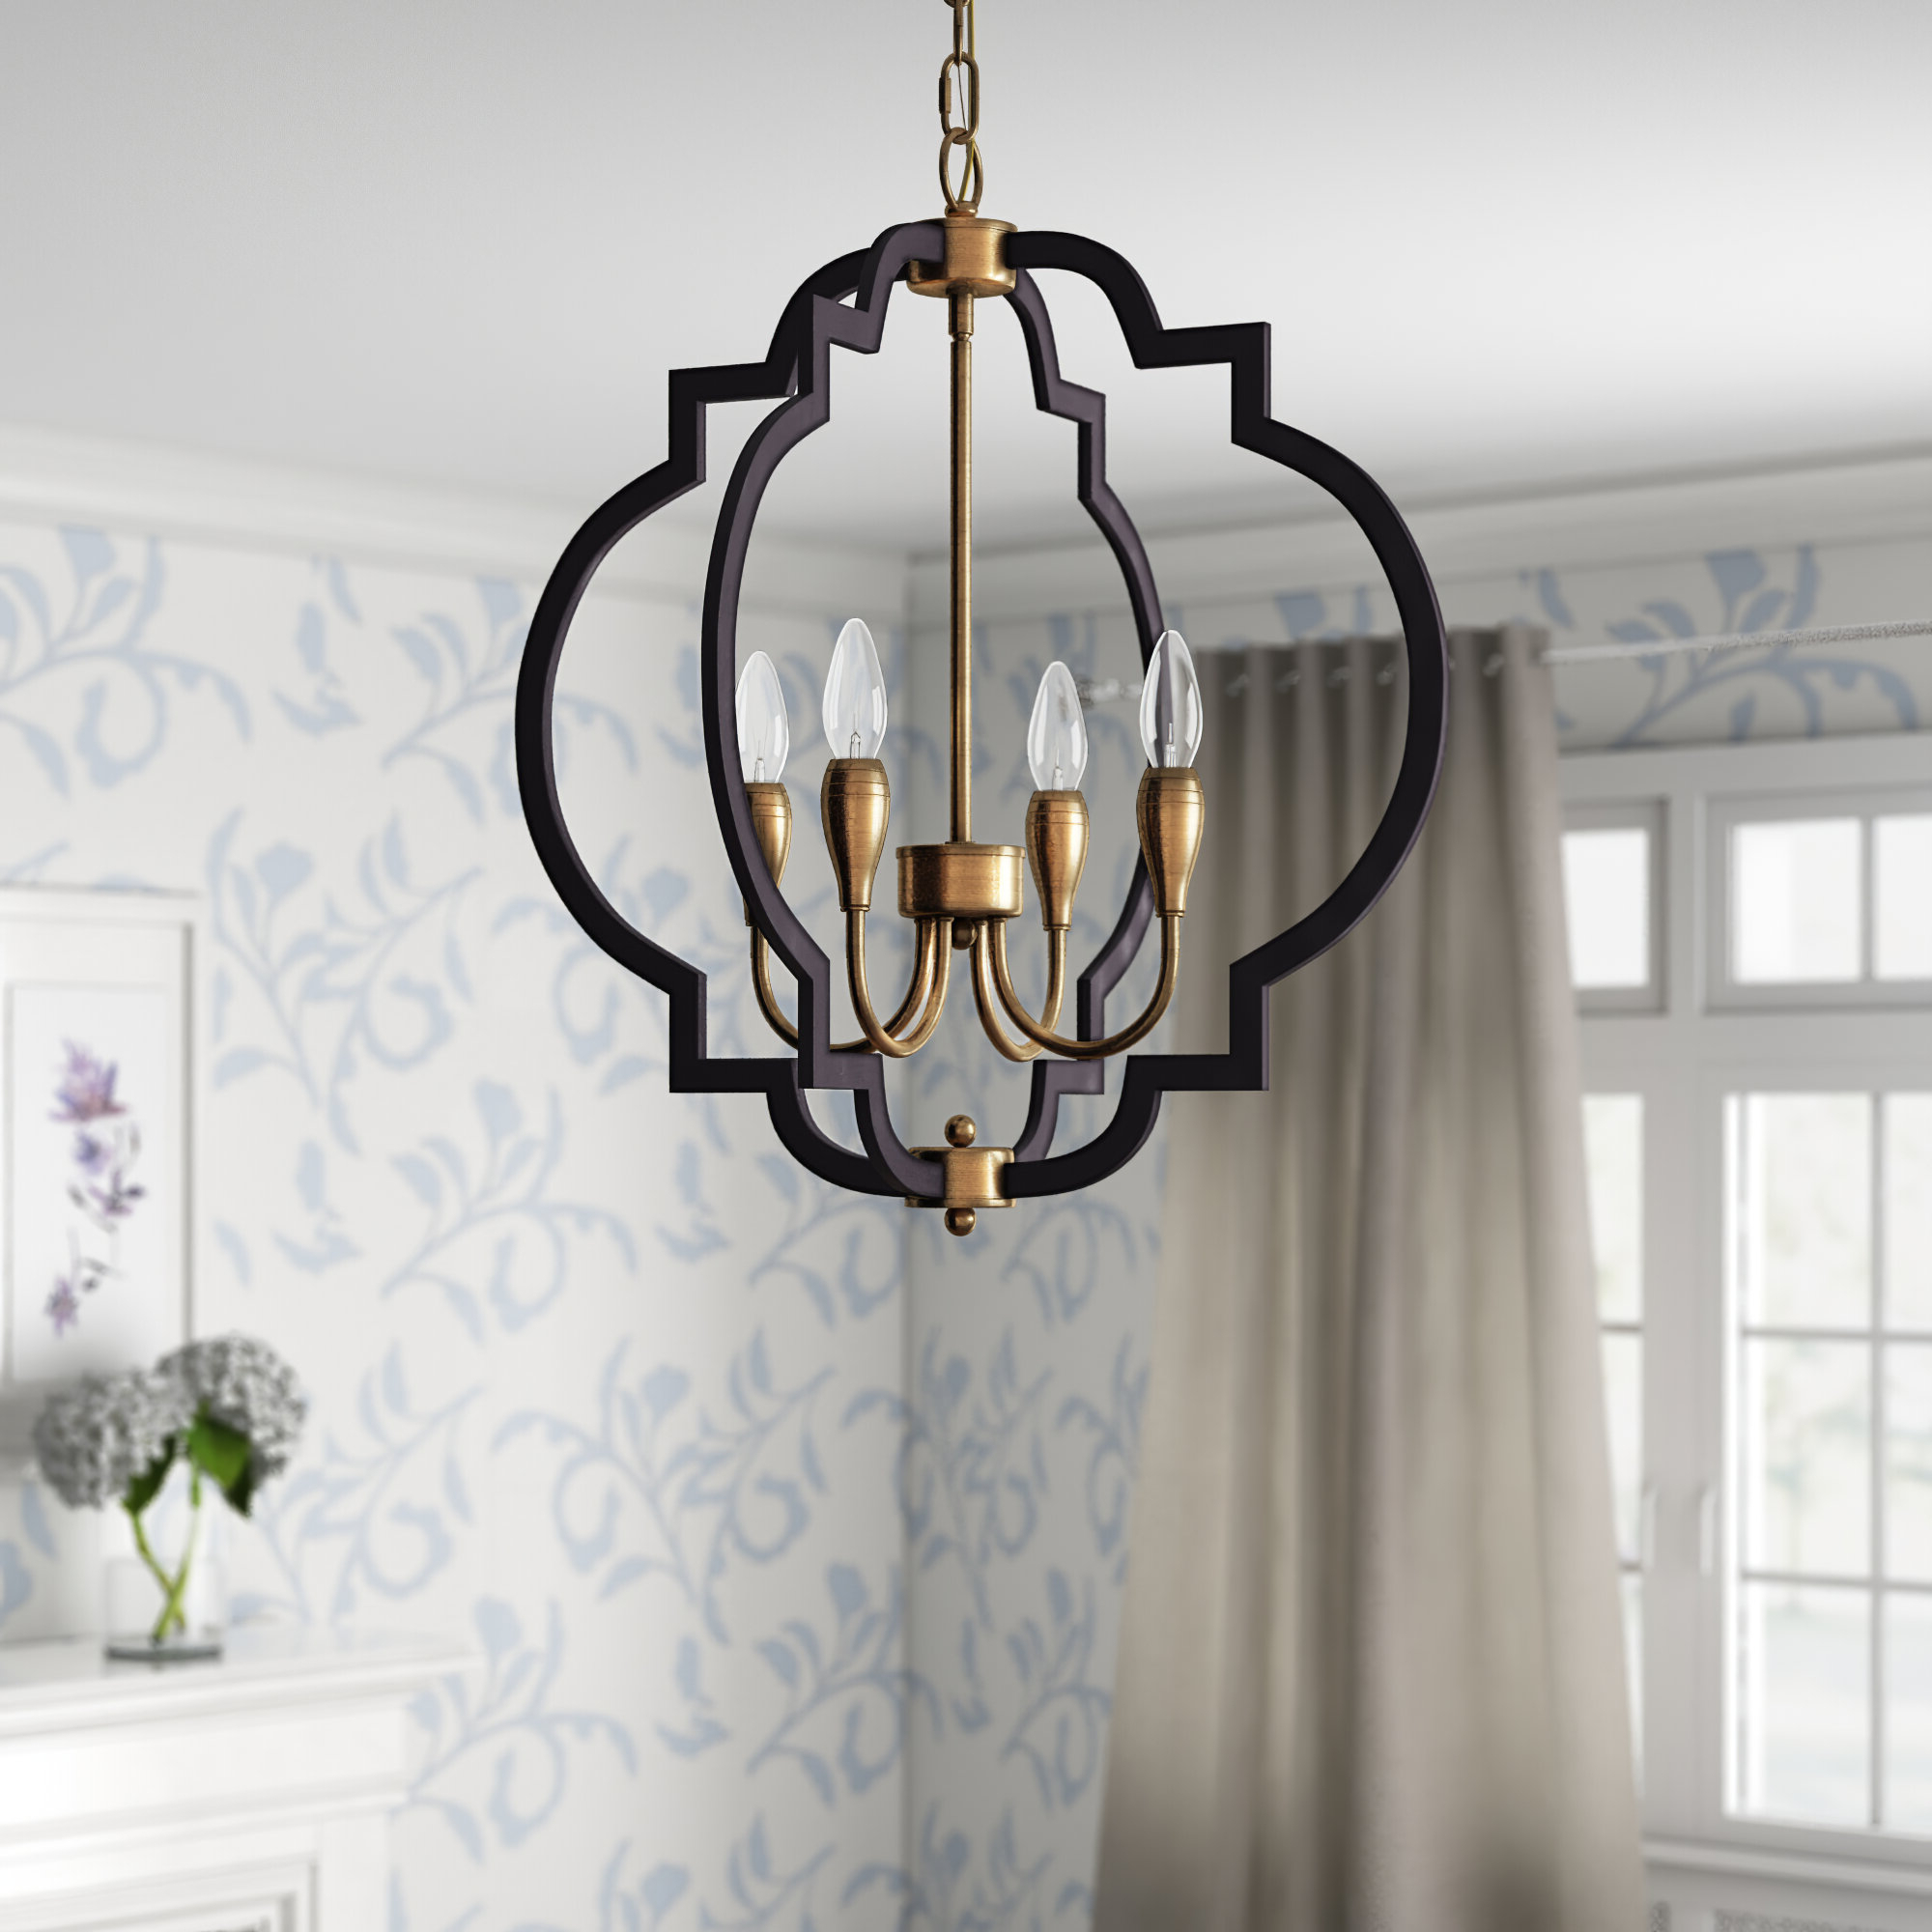 Bennington 4 Light Candle Style Chandeliers Within Favorite Astin 4 Light Geometric Chandelier (View 18 of 20)